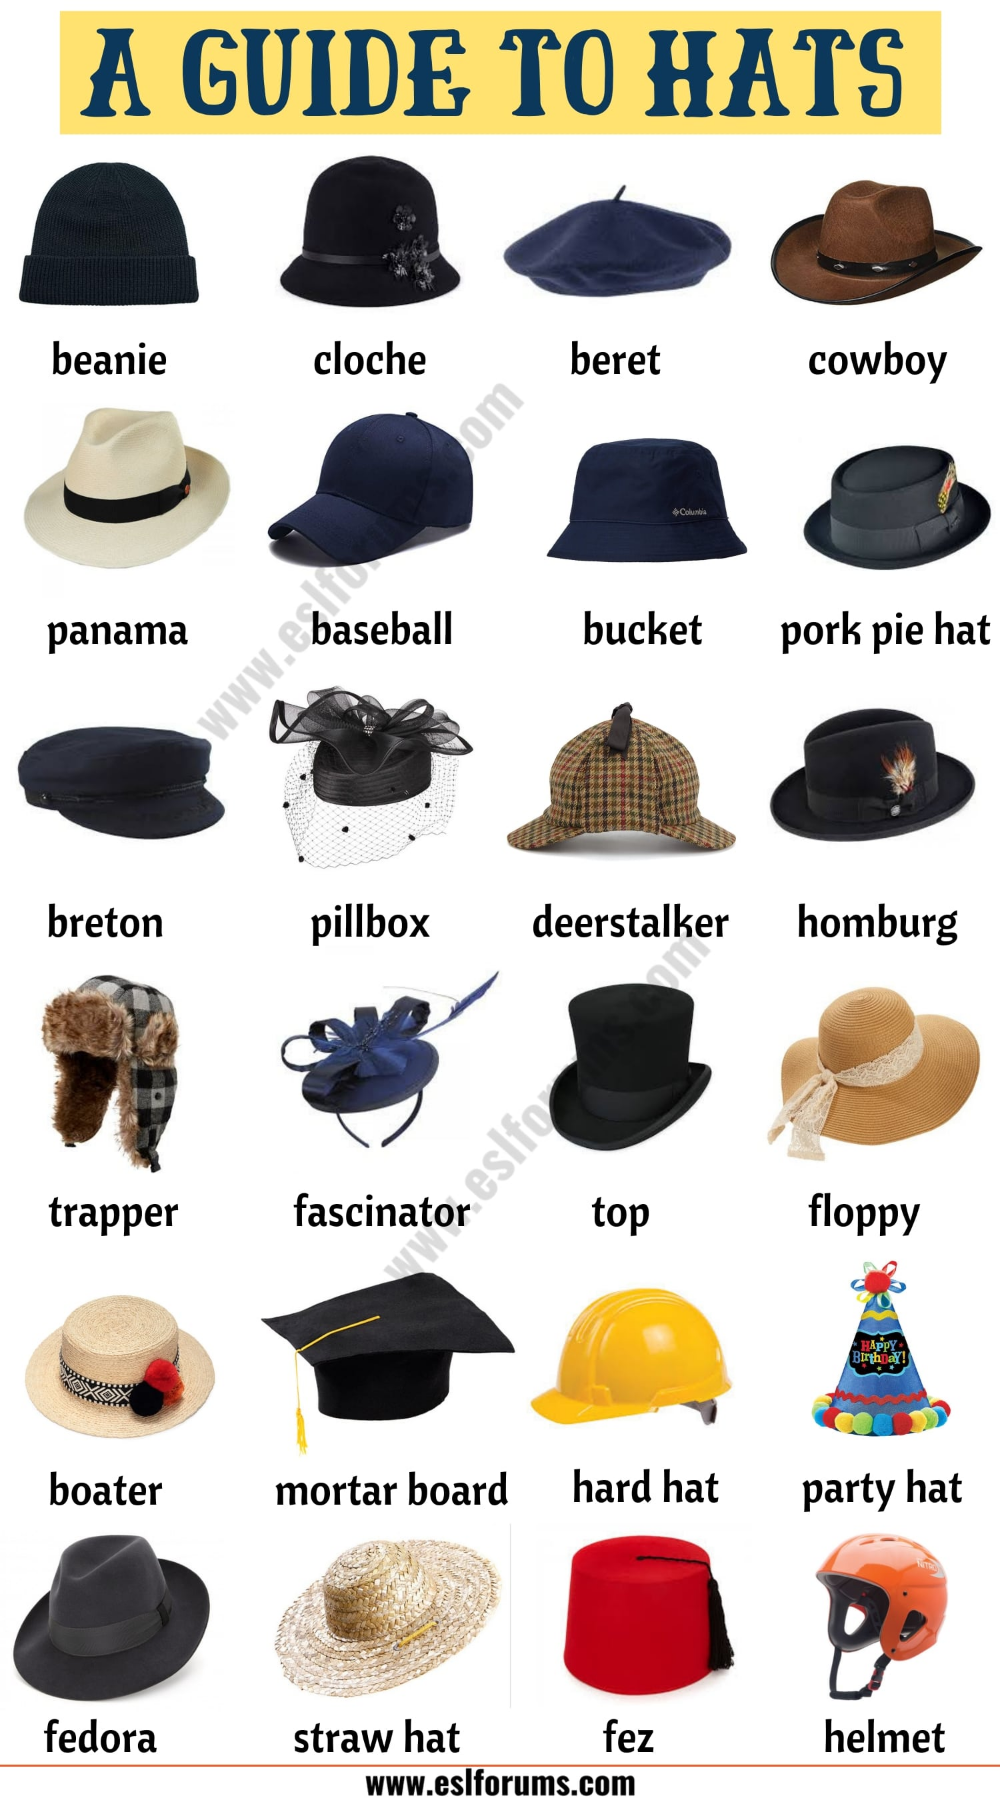 Types Of Hats List Of 20 Hat Styles With Esl Picture Esl Forums Fashion Vocabulary Hat Fashion Fashion Terms